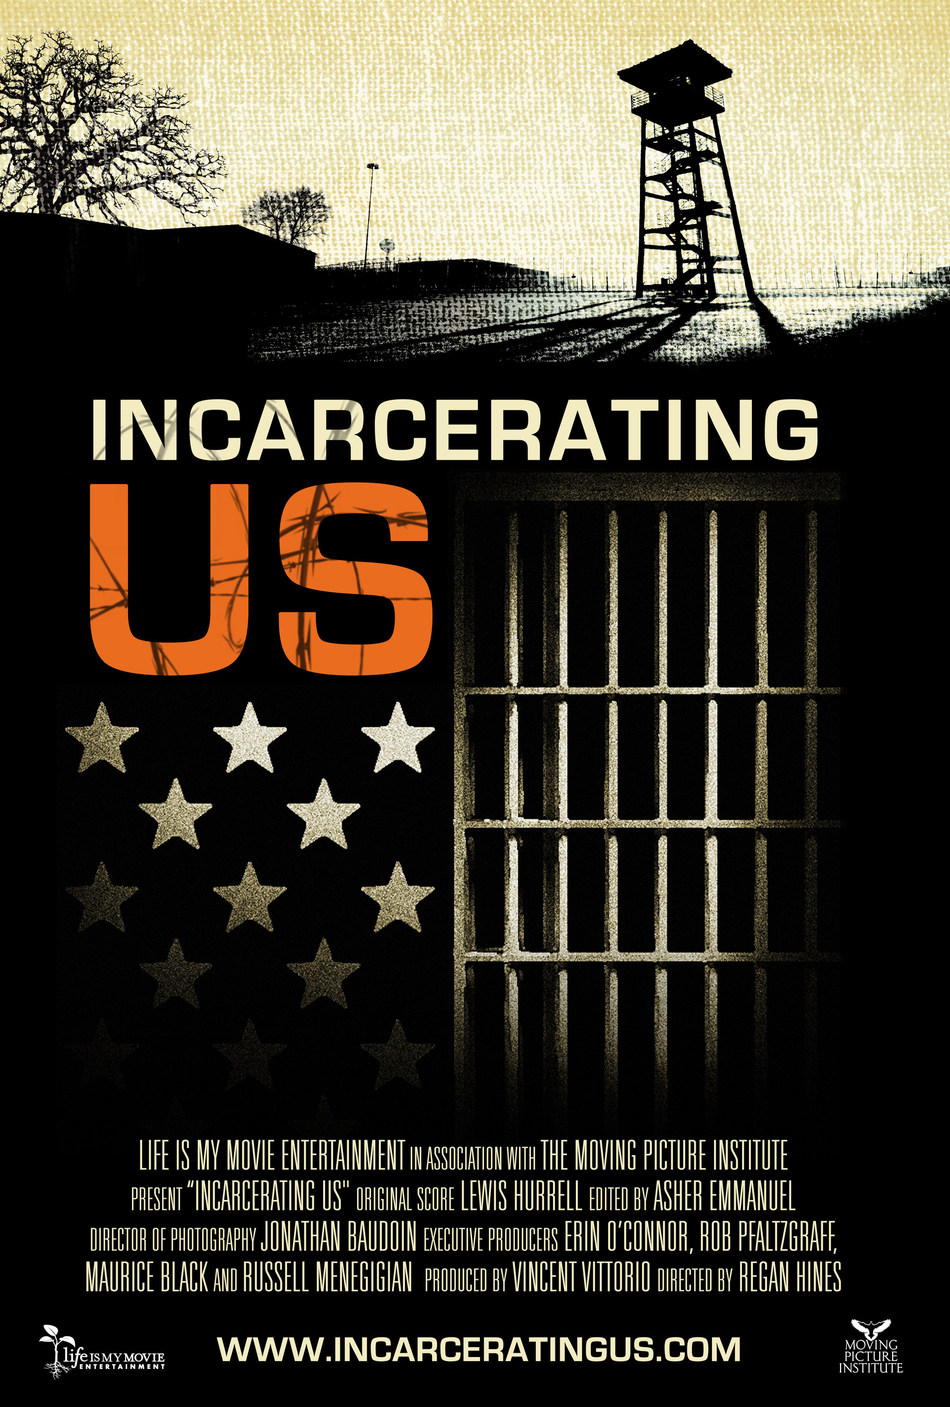 Incarcerating US is a groundbreaking documentary exploring the history of America's overincarceration epidemic and vital criminal justice reforms.